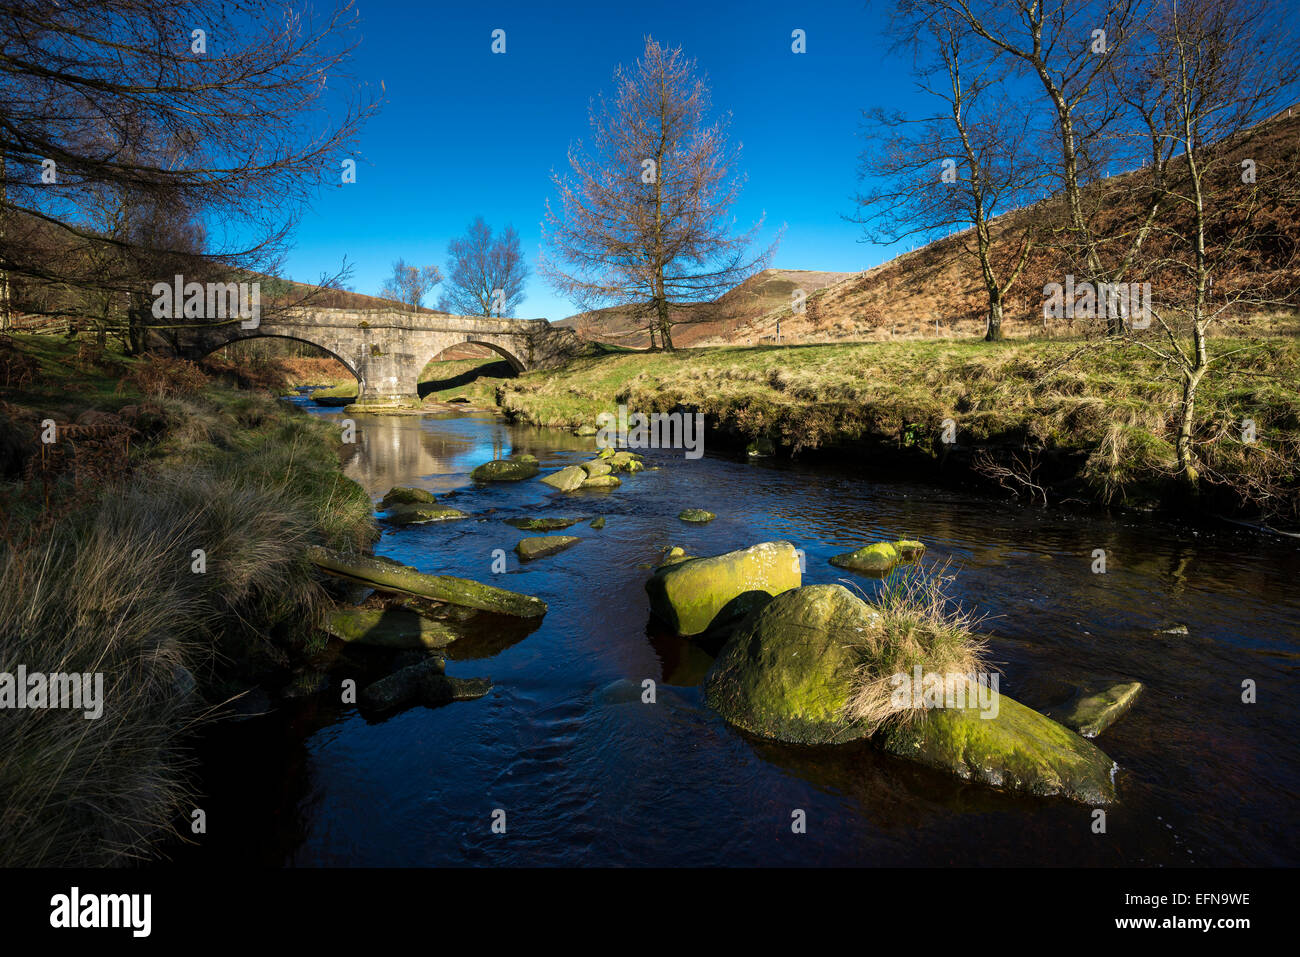 Packhorse bridge at Slippery stones over the river Derwent in the Peak District on a sunny autumn day. - Stock Image